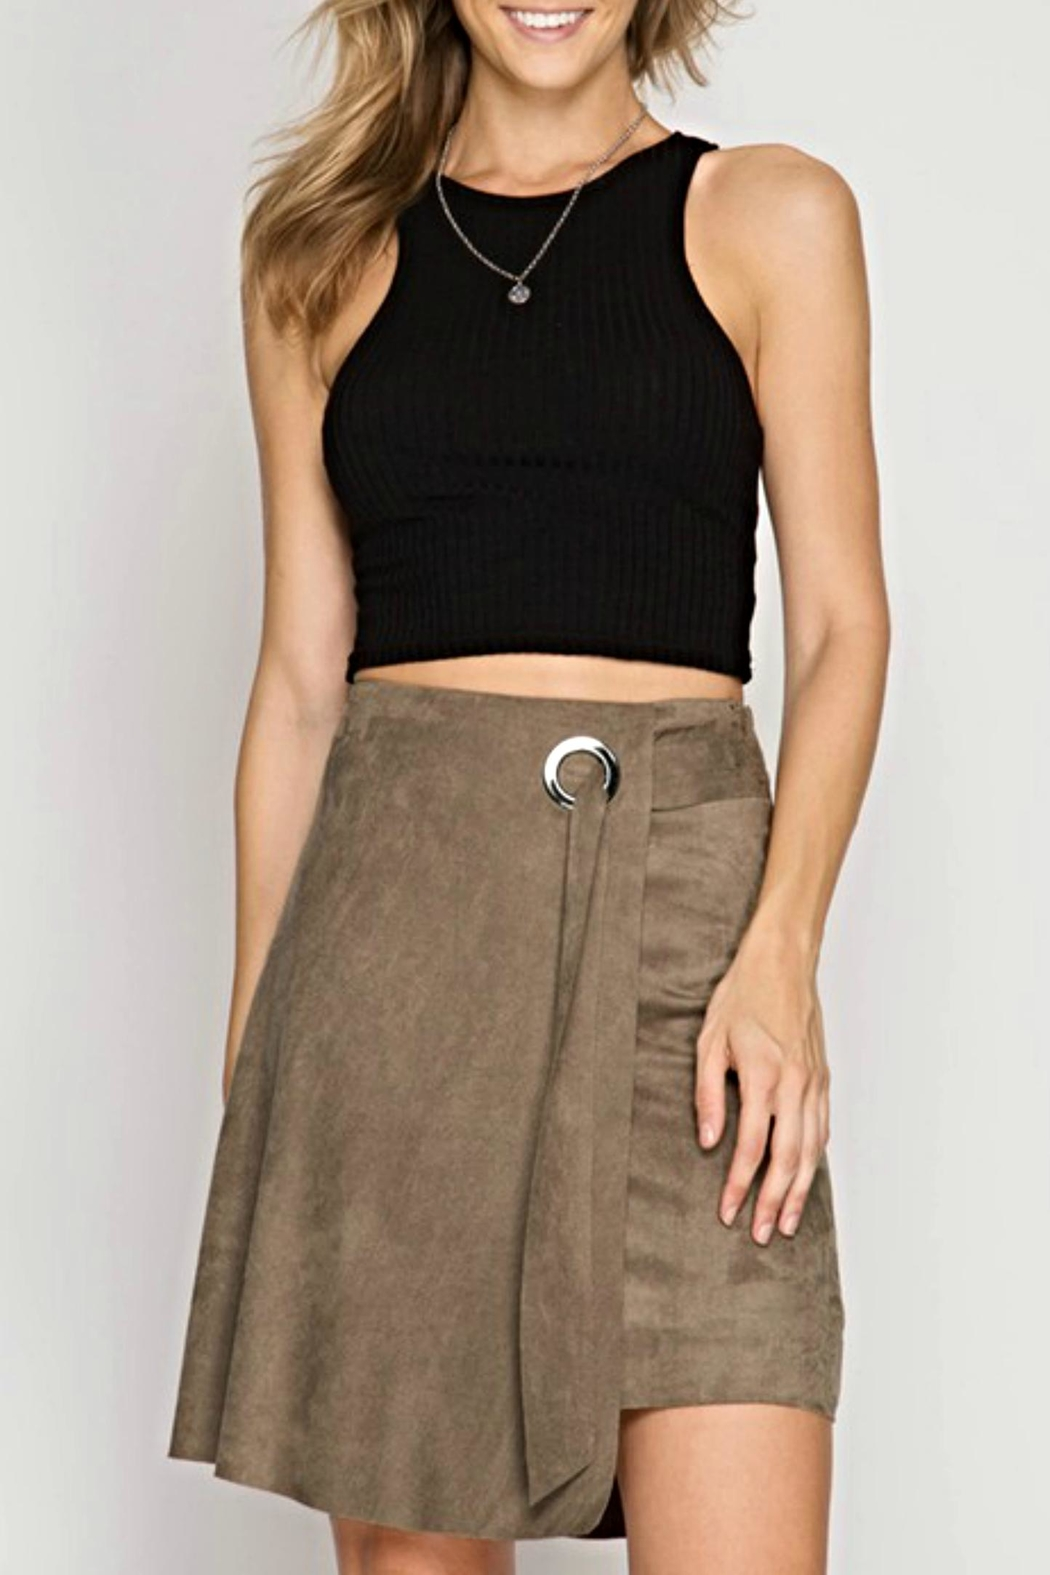 She + Sky Suede Tie Skirt - Main Image